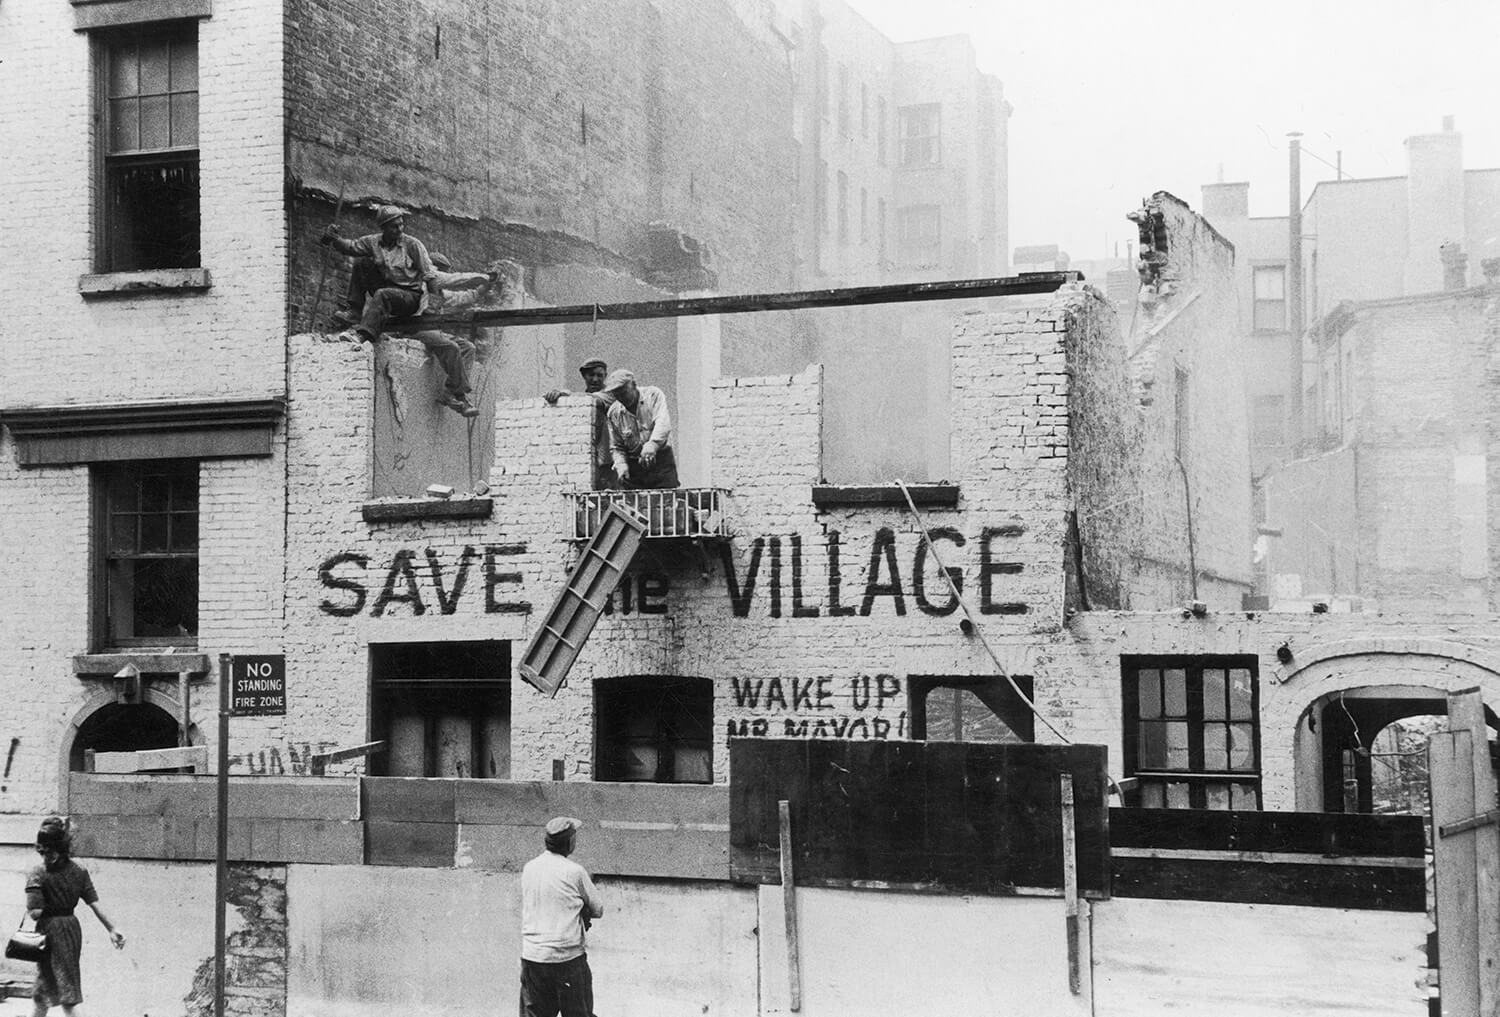 Save the Village, 1960